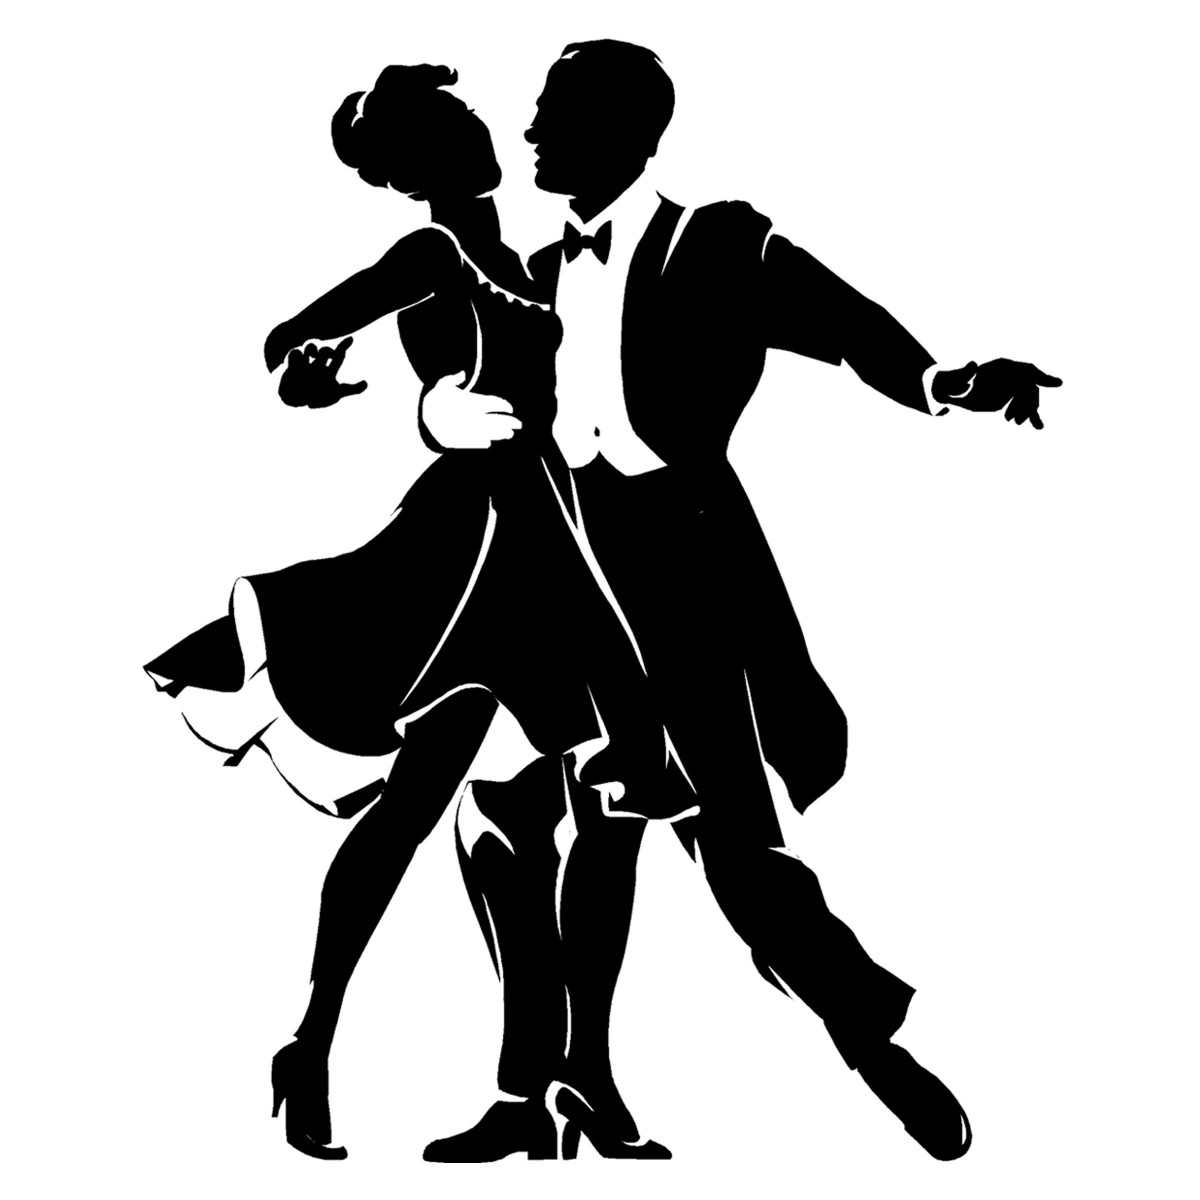 Free dancing cliparts download. Dancer clipart couple dance